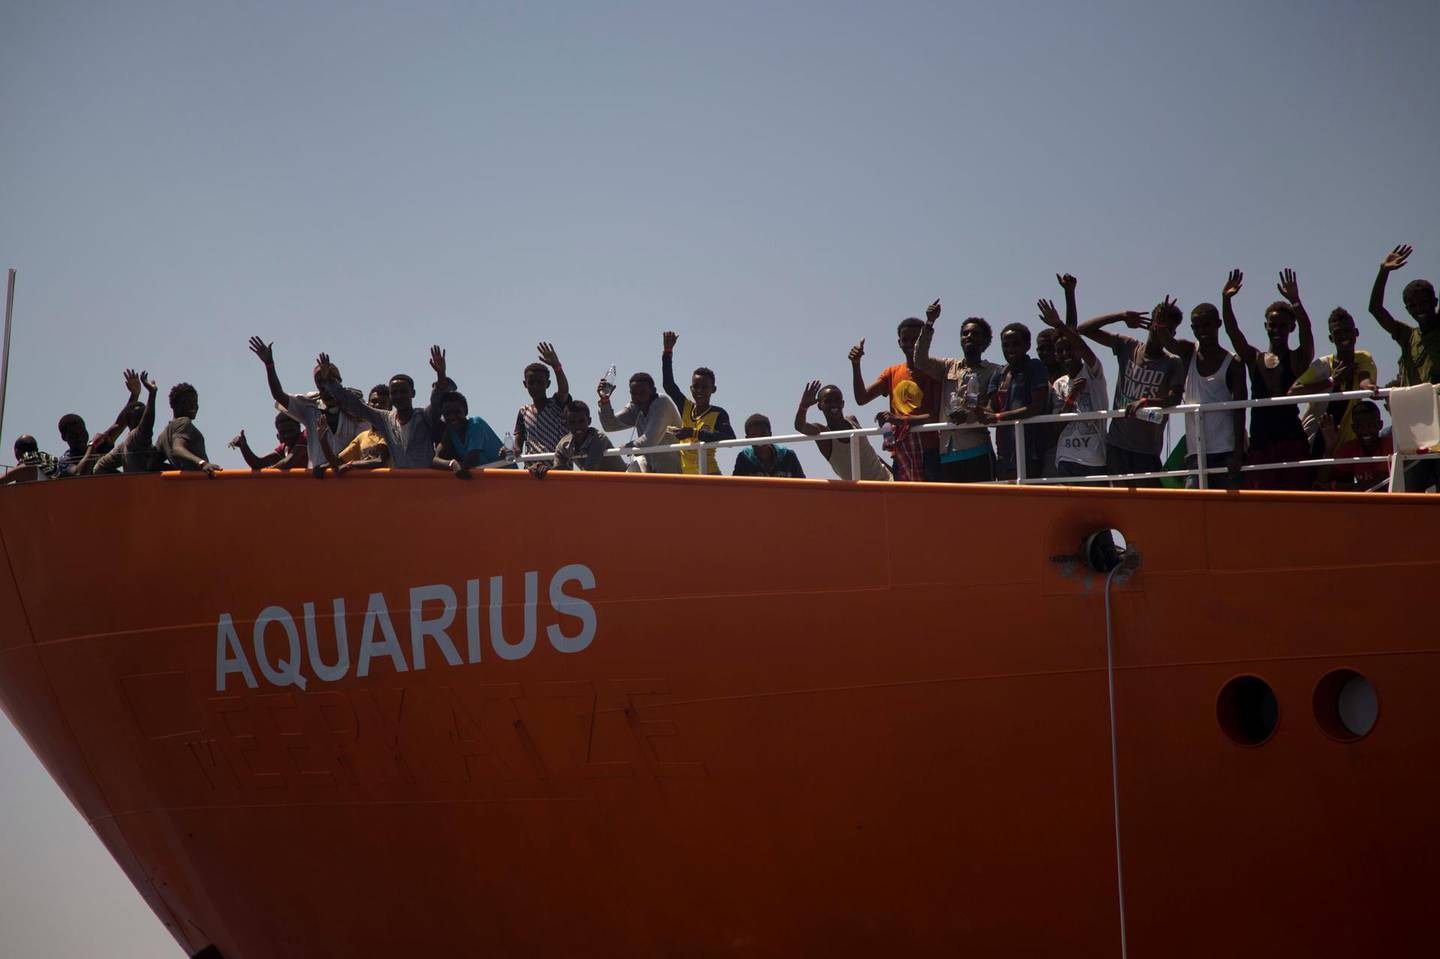 """In this photo taken on Sunday, Aug. 21, 2016, migrants wave from SOS Mediterranee Aquarius rescue ship, after being rescued by members of the Spanish NGO Proactiva Open Arms during an operation at the Mediterranean sea, about 12 miles north of Sabratha, Libya. Italy's new """"Italians first"""" government claimed victory Monday June 11, 2018, when the Spanish prime minister offered safe harbor to a private rescue ship after Italy and Malta refused to allow it permission to disembark its 629 migrant passengers in their ports. (AP Photo/Emilio Morenatti)"""